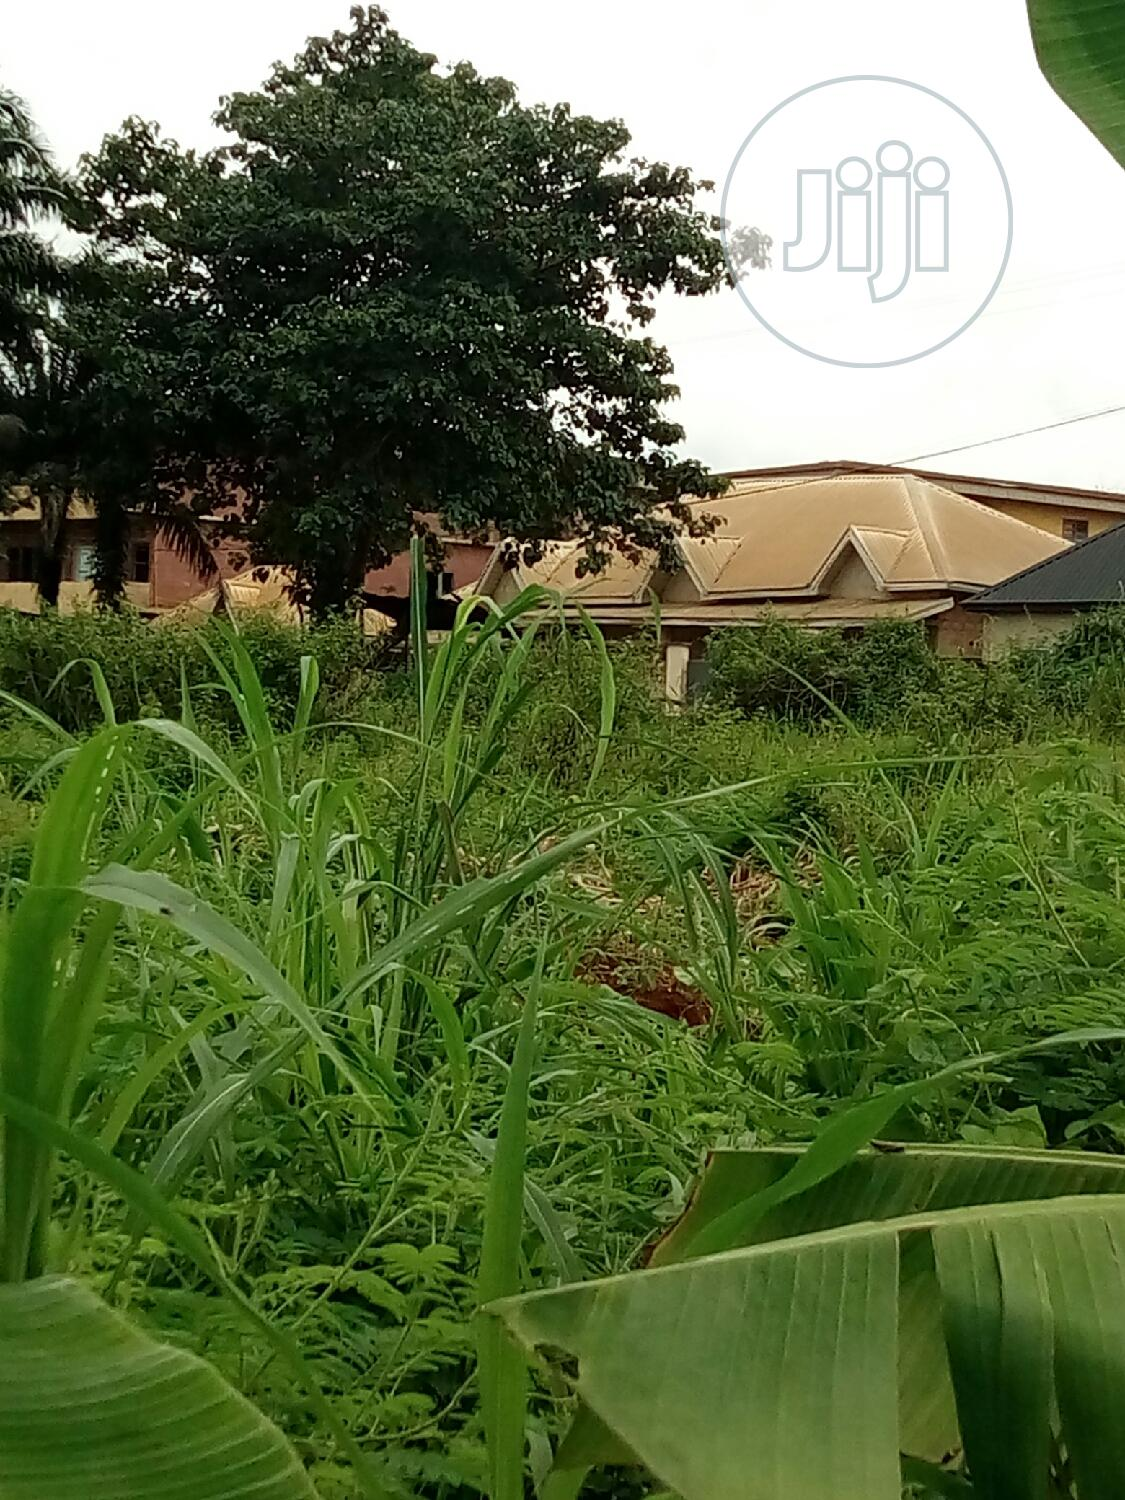 53 Plots Of Land/16 Units Of Bungalow For Sale At Agu Awka | Houses & Apartments For Sale for sale in Awka, Anambra State, Nigeria